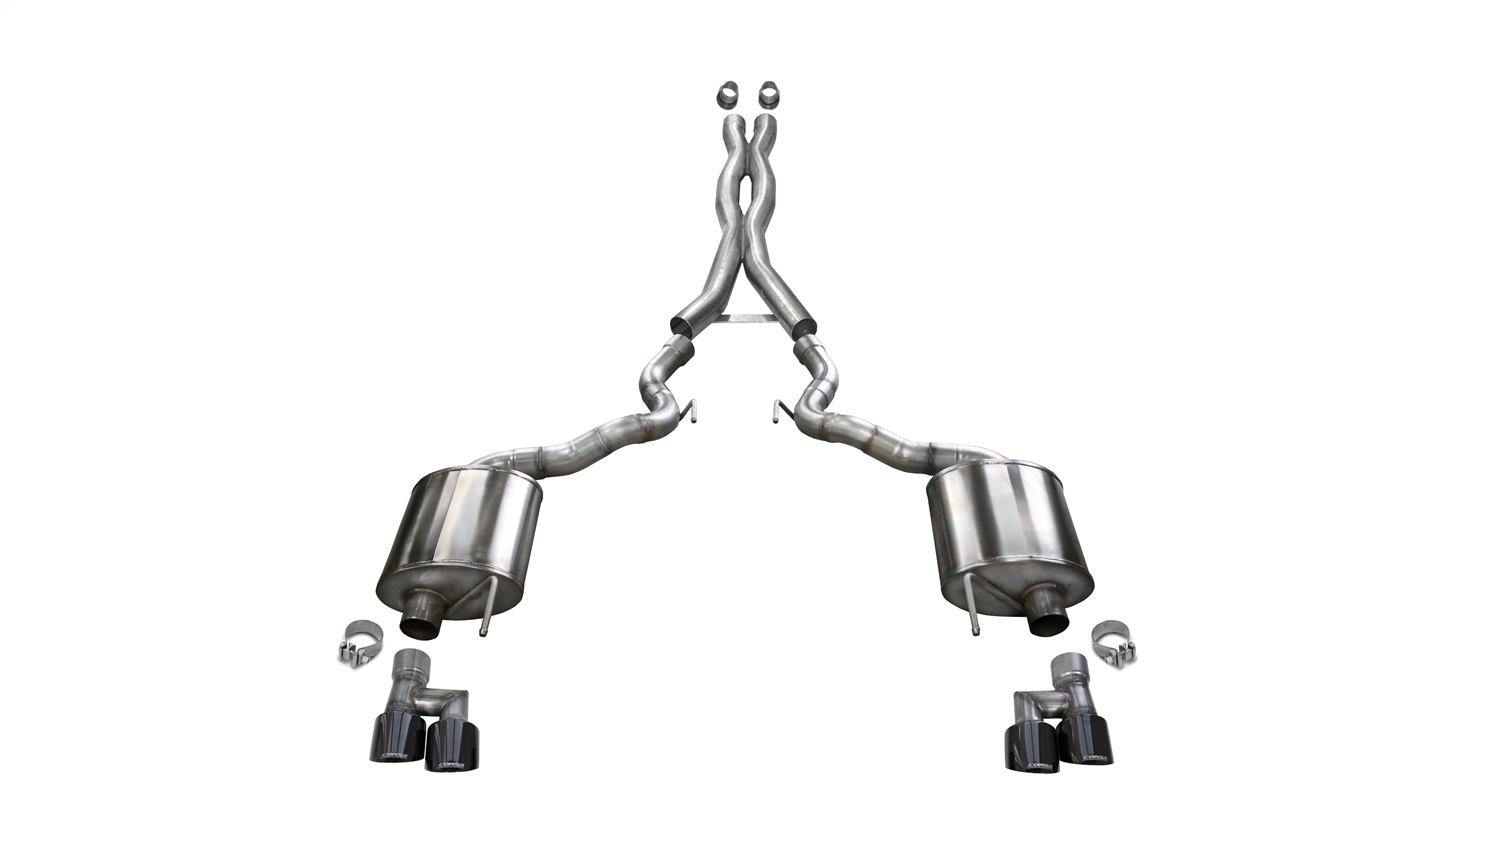 Corsa Performance 21047BLK Sport Cat-Back Exhaust System Fits 19 Mustang